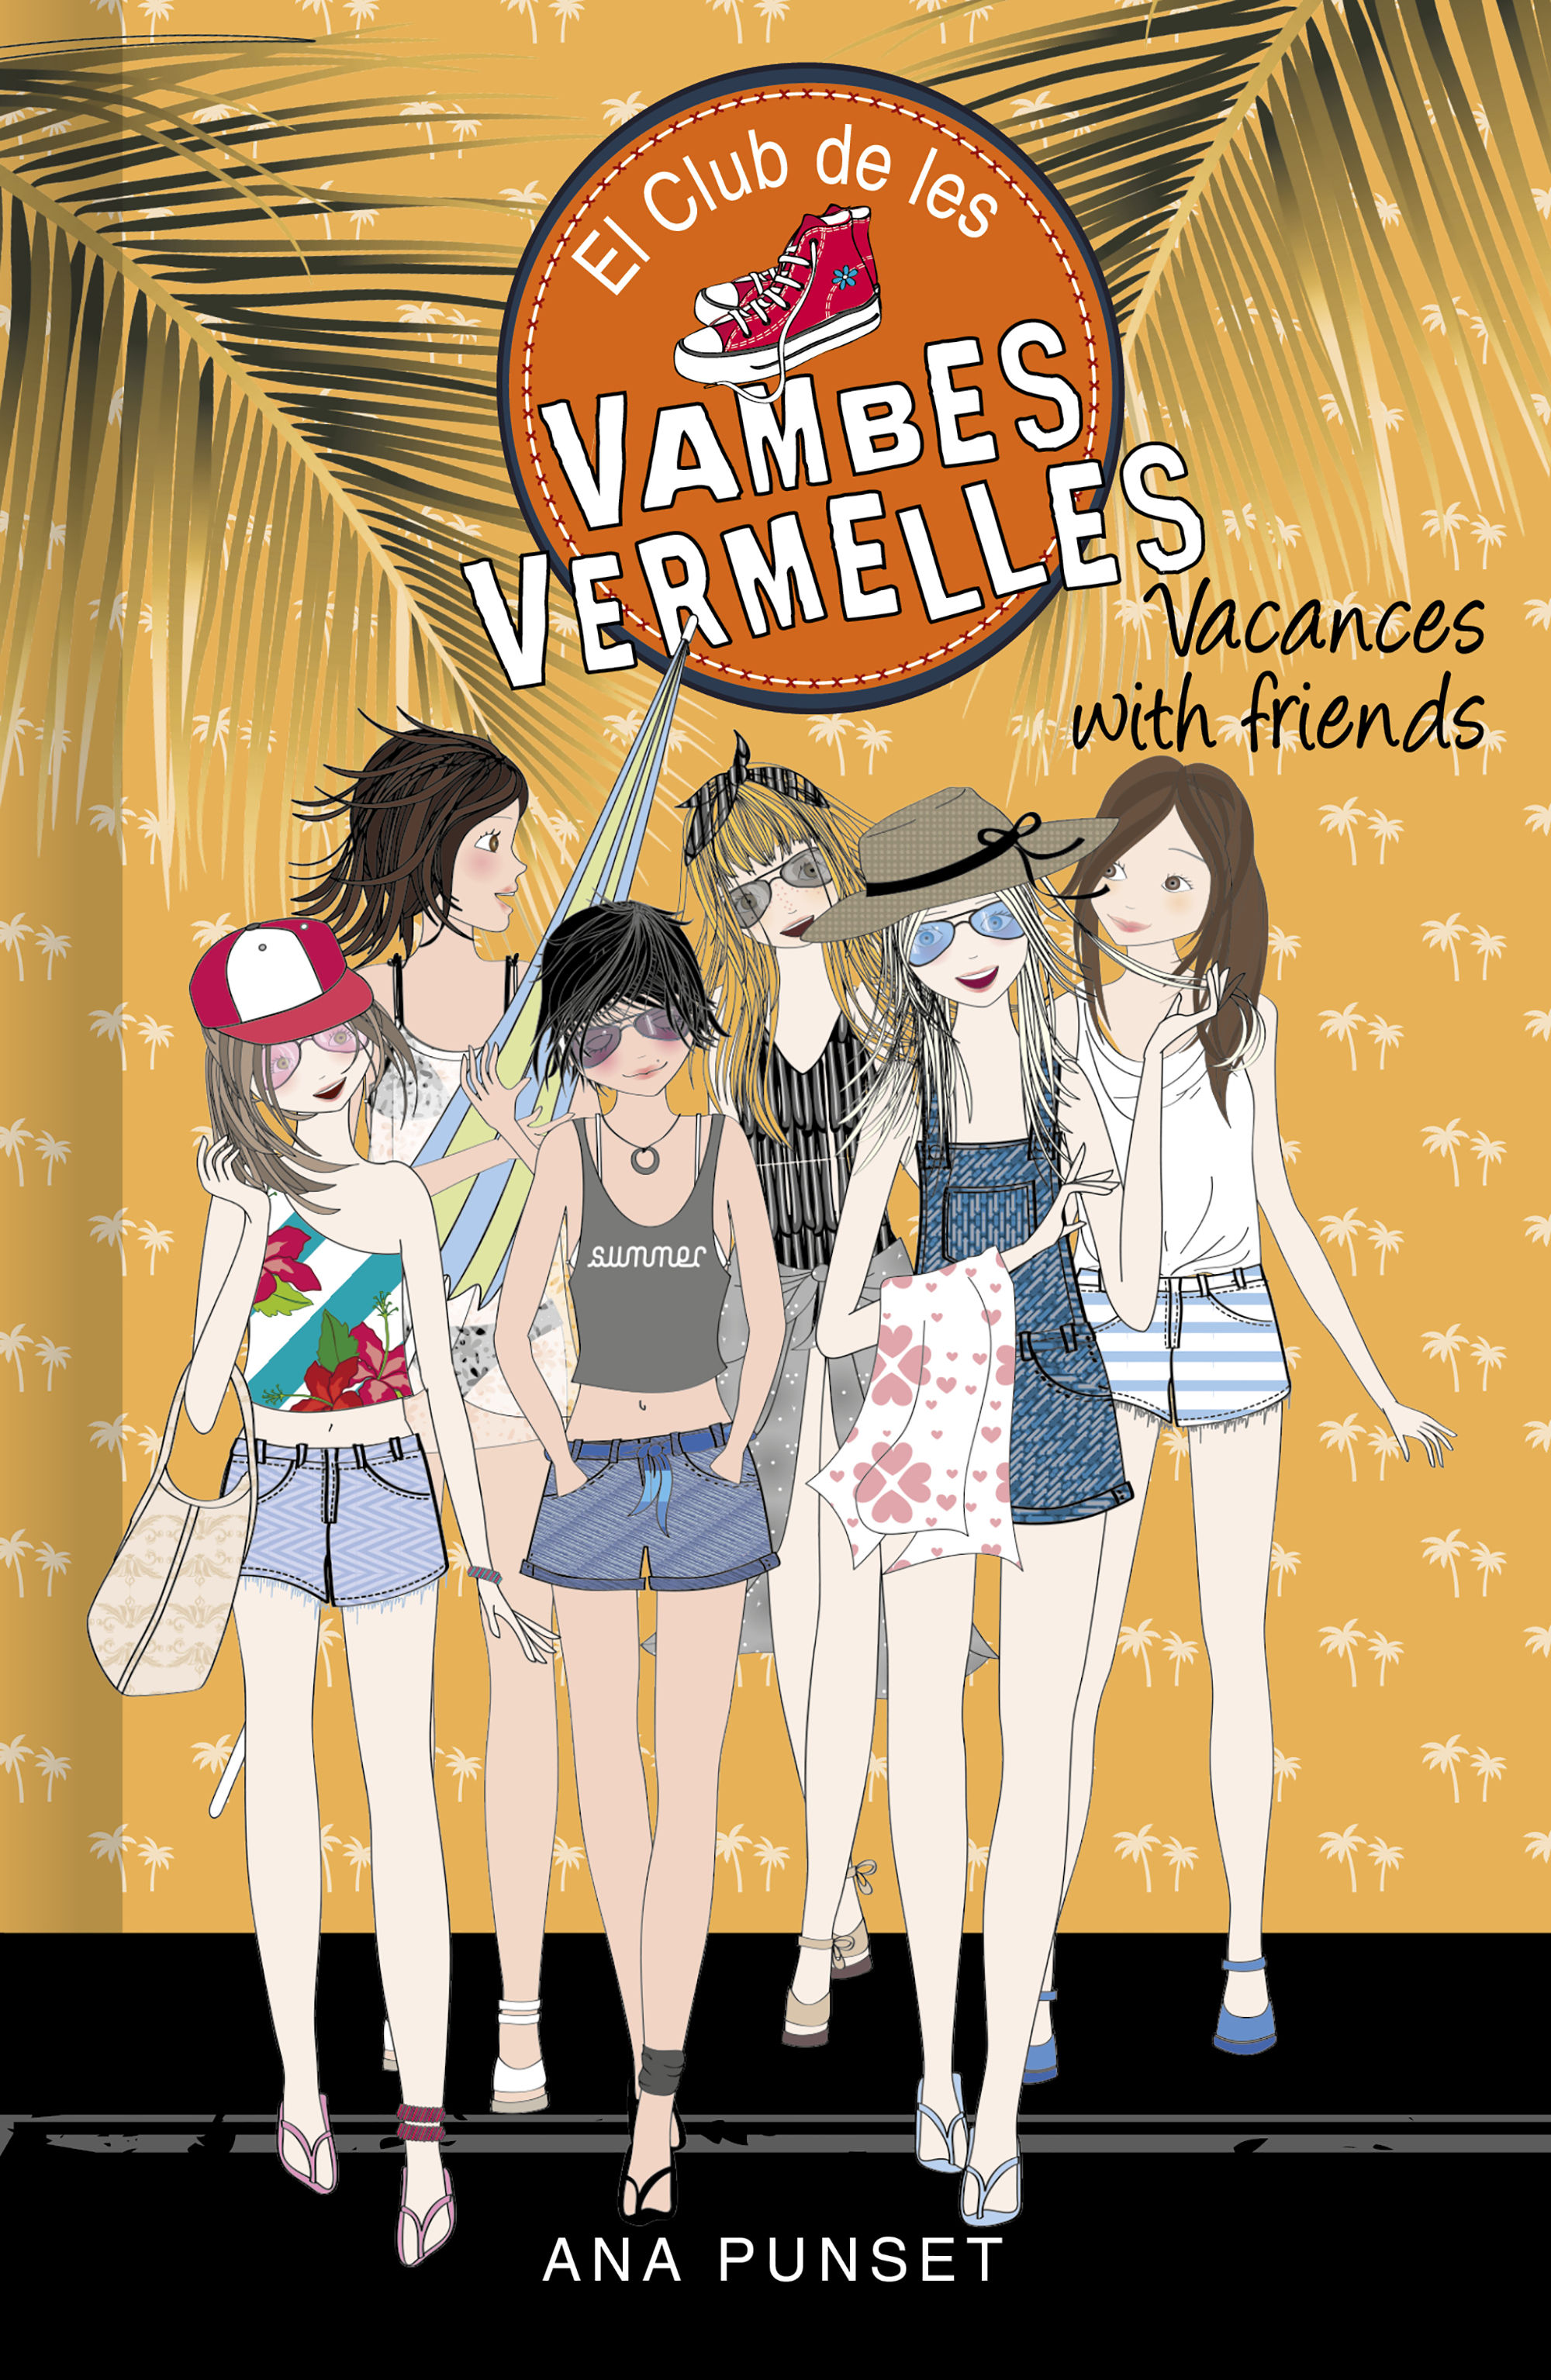 VAMBES VERMELLES 19 VACANCES WITH FRIENDS